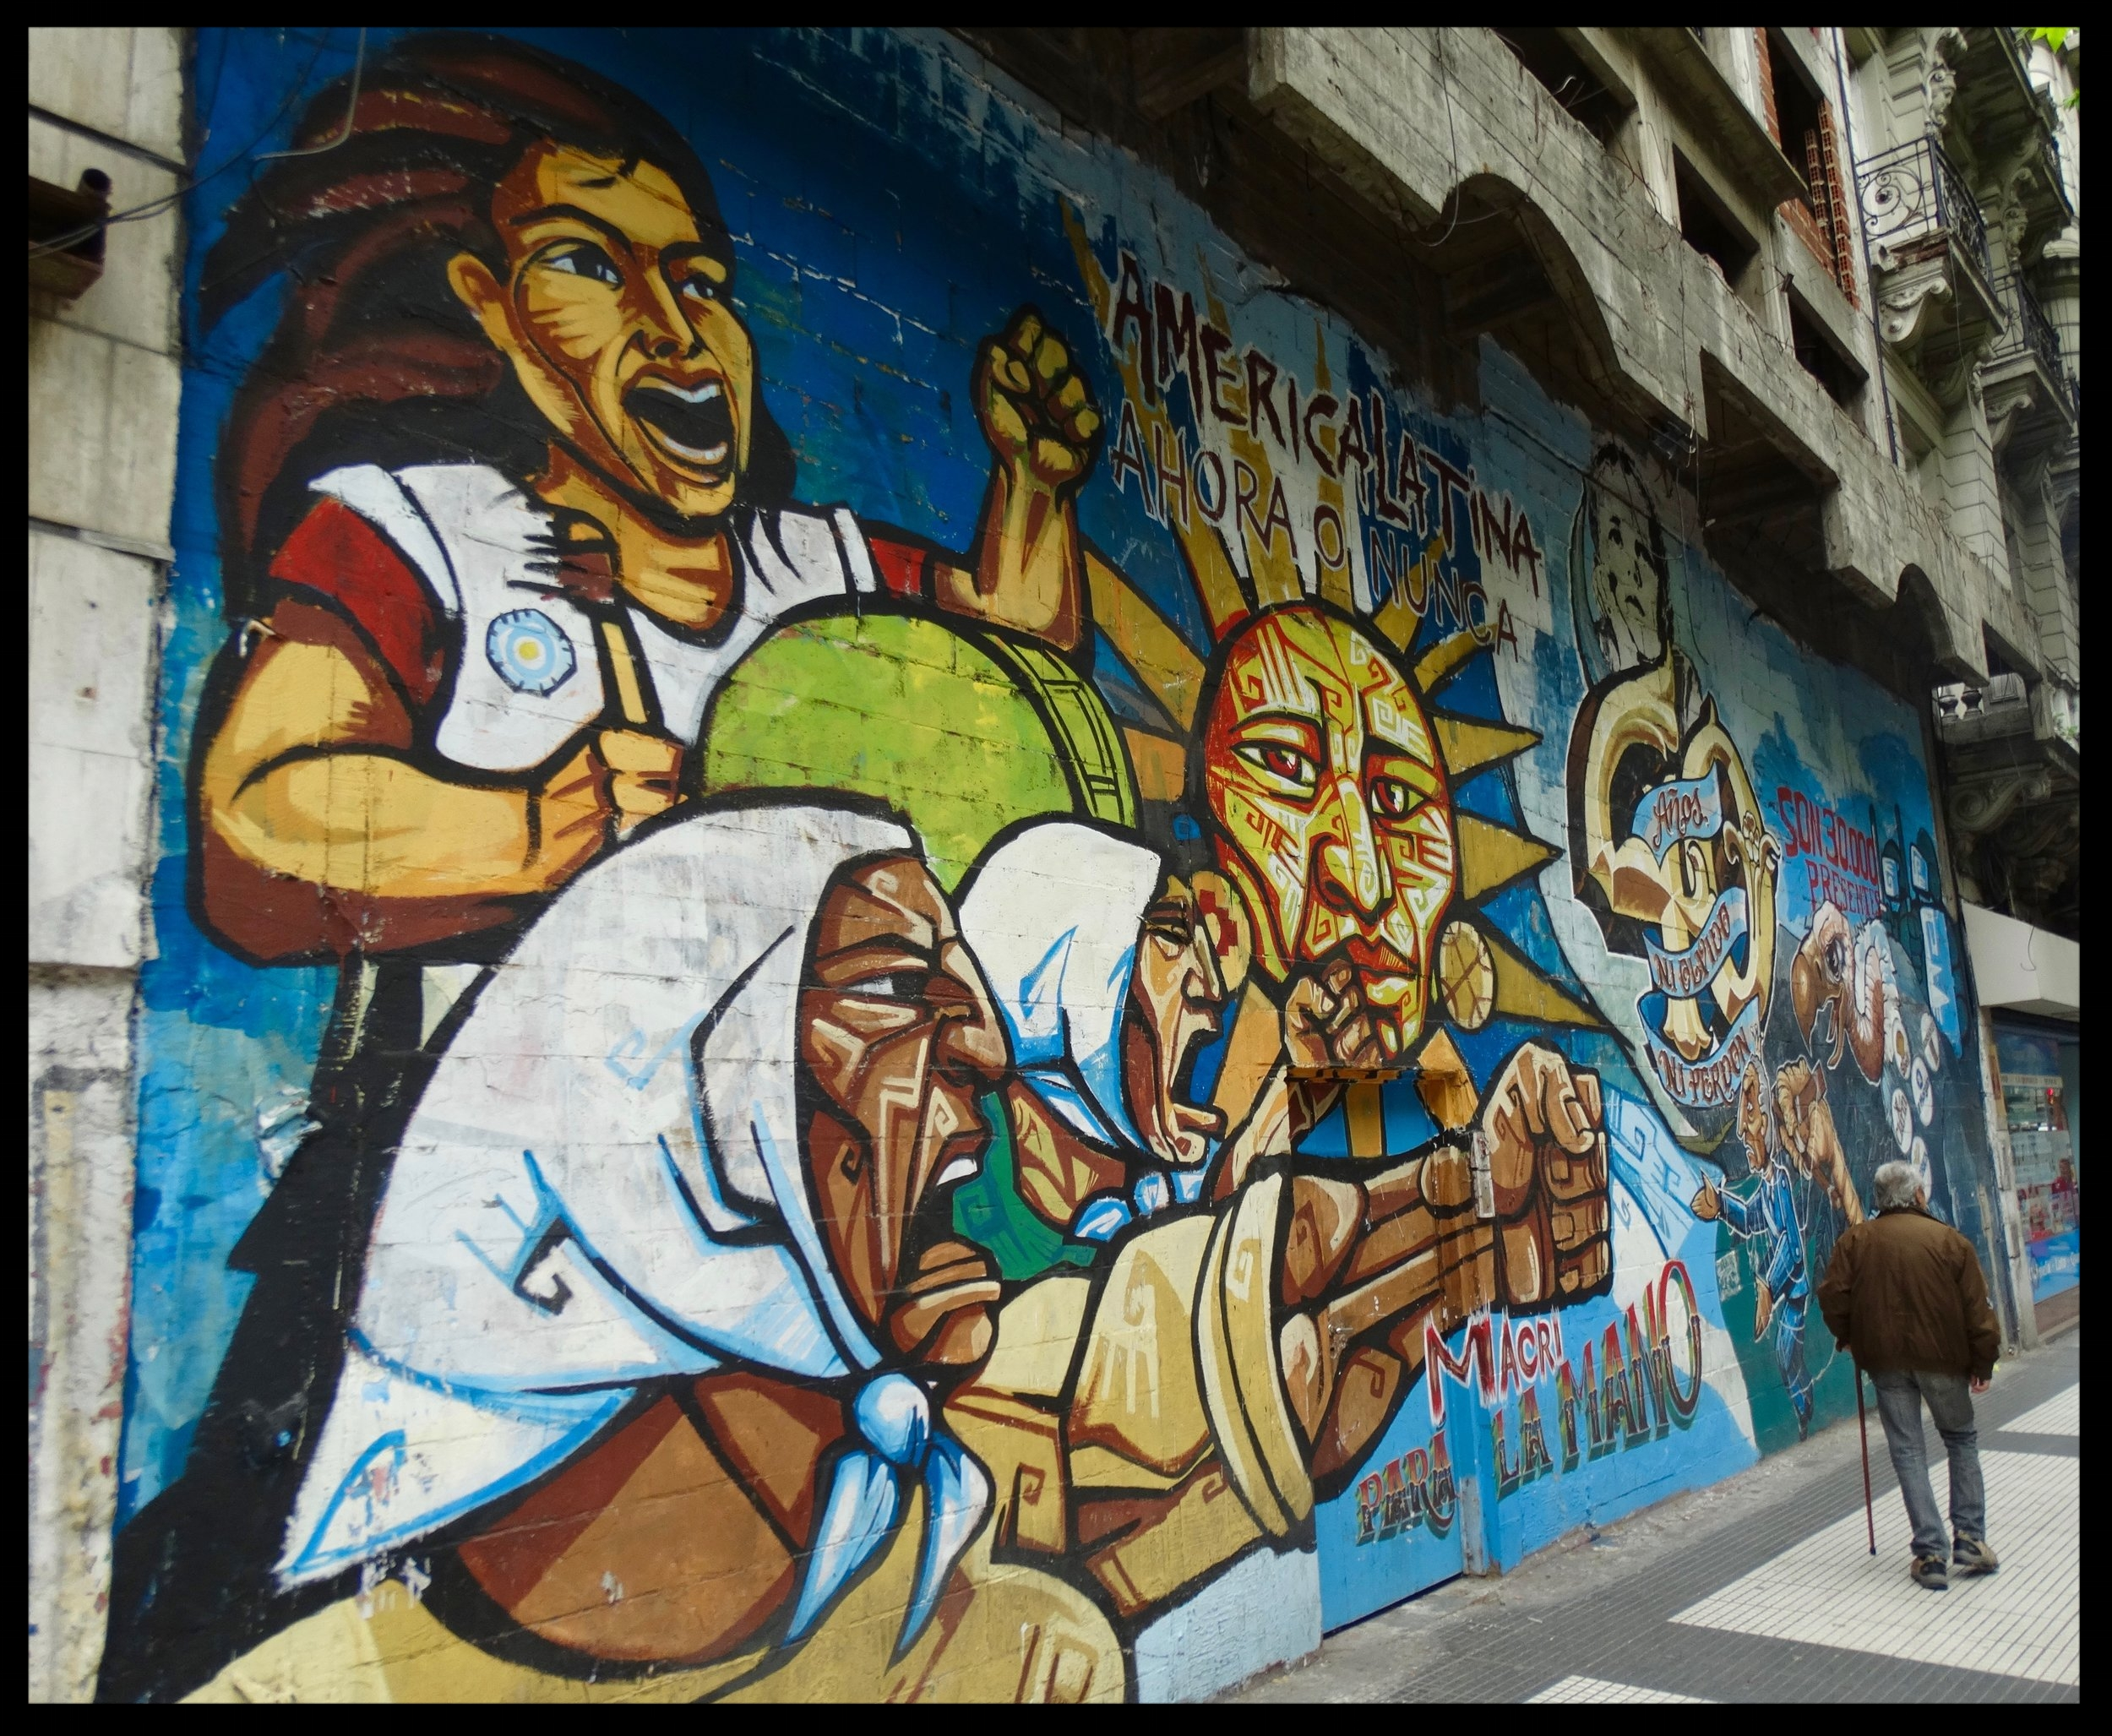 A mural at the center of Buenos Aires depicting a proletariat uprising against...